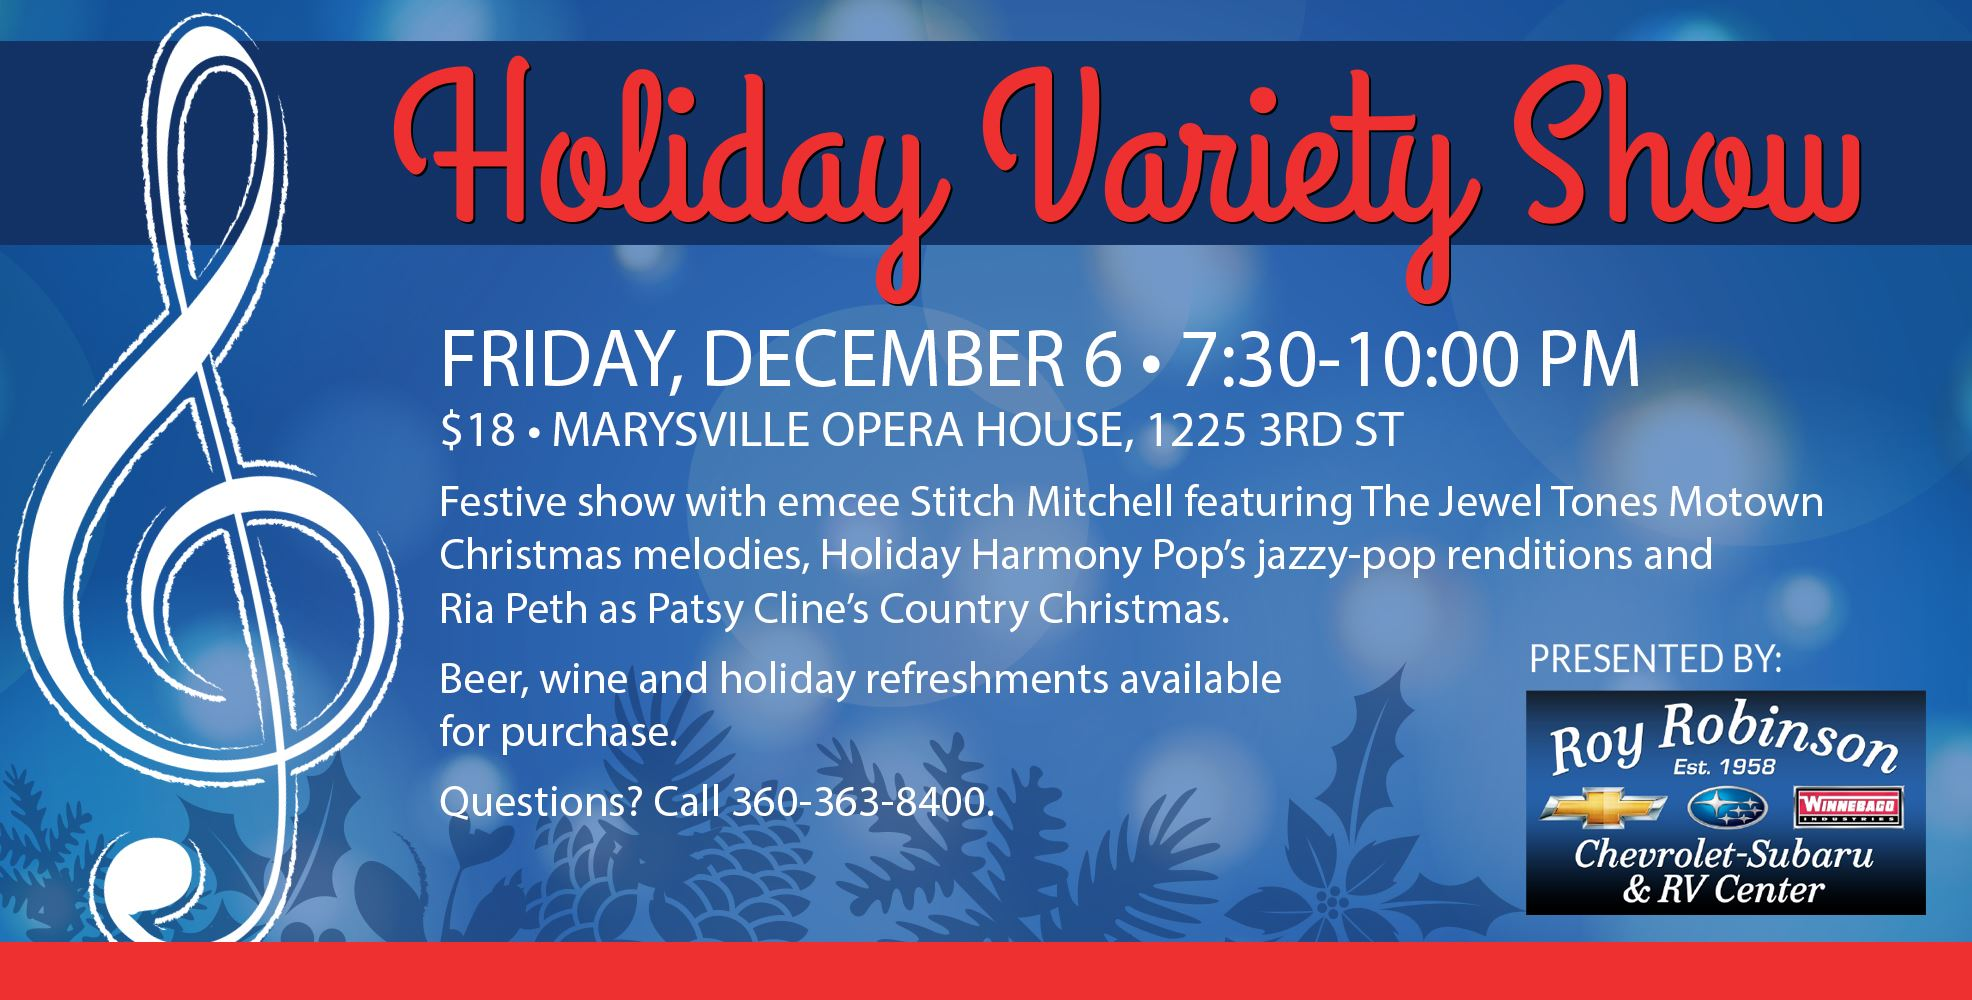 Holiday Variety Show on Friday, December 6 at the Marysville Opera House